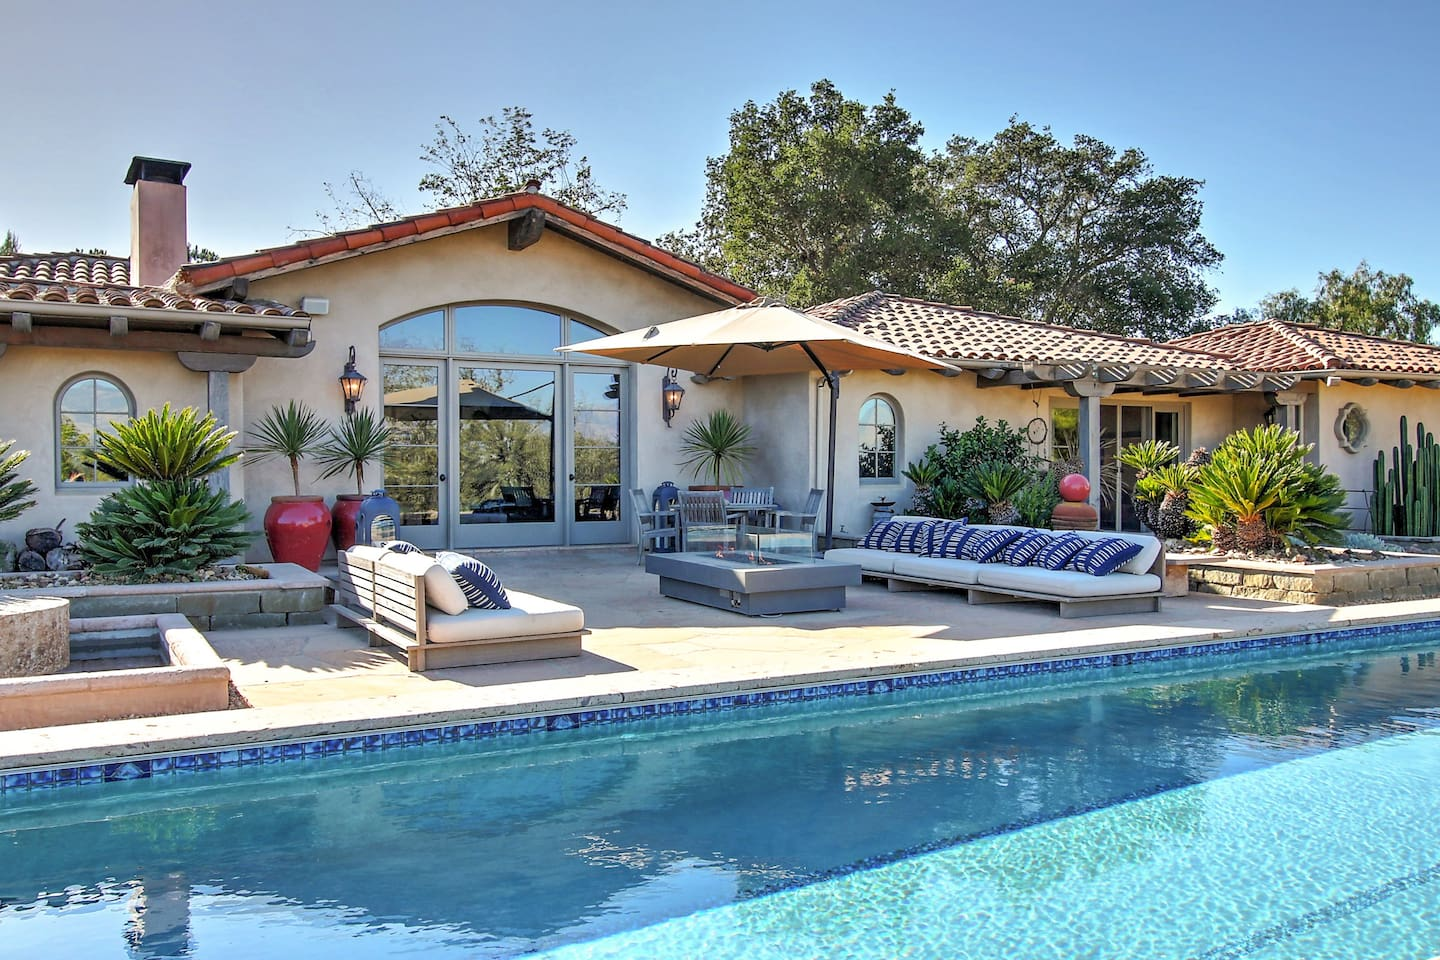 Welcome to Santa Ynez! Your California dream getaway is professionally managed by TurnKey Vacation Rentals.